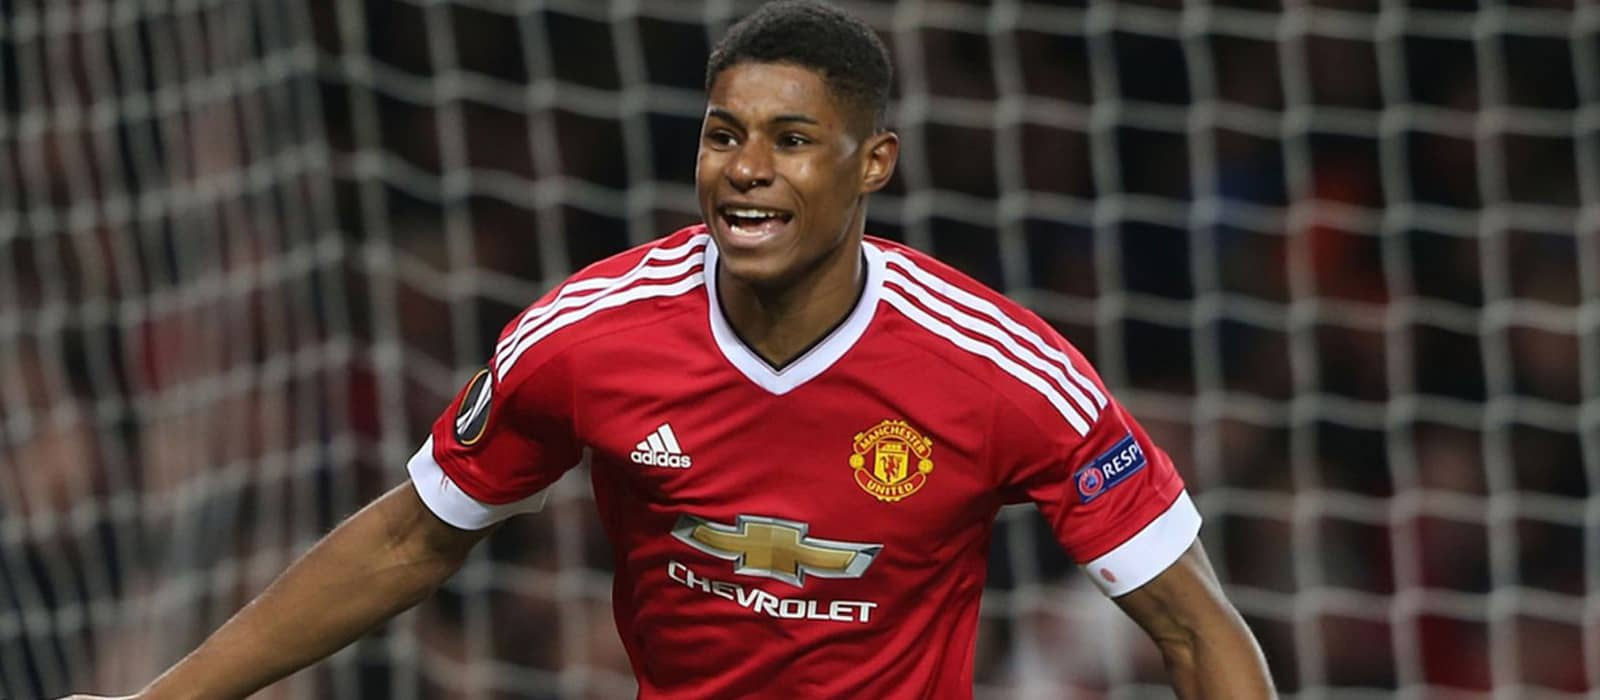 Manchester United fans overjoyed with Marcus Rashford's performance against West Ham United